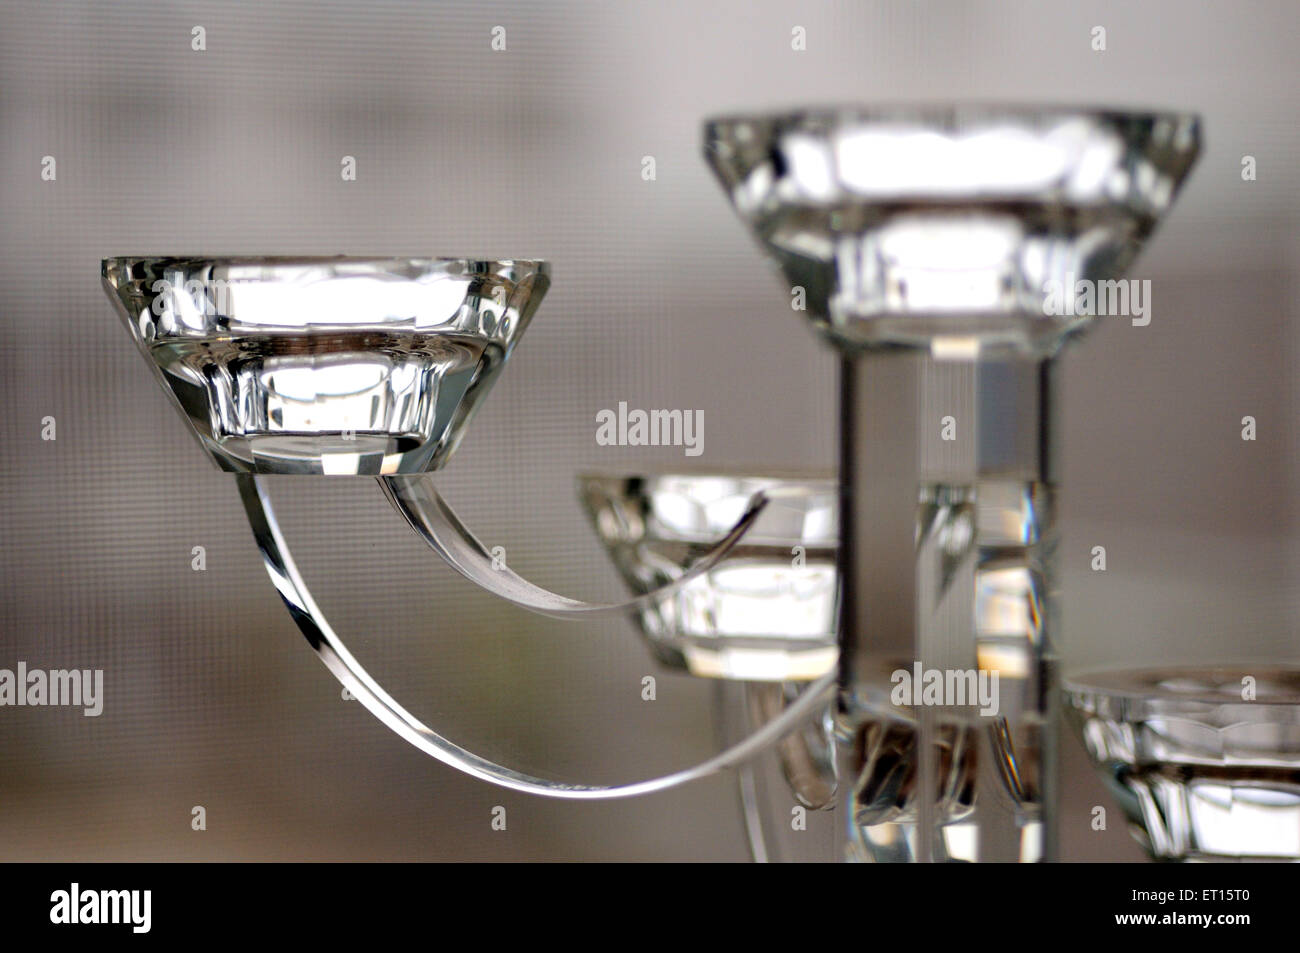 Cut glass candle stand ; China - Stock Image